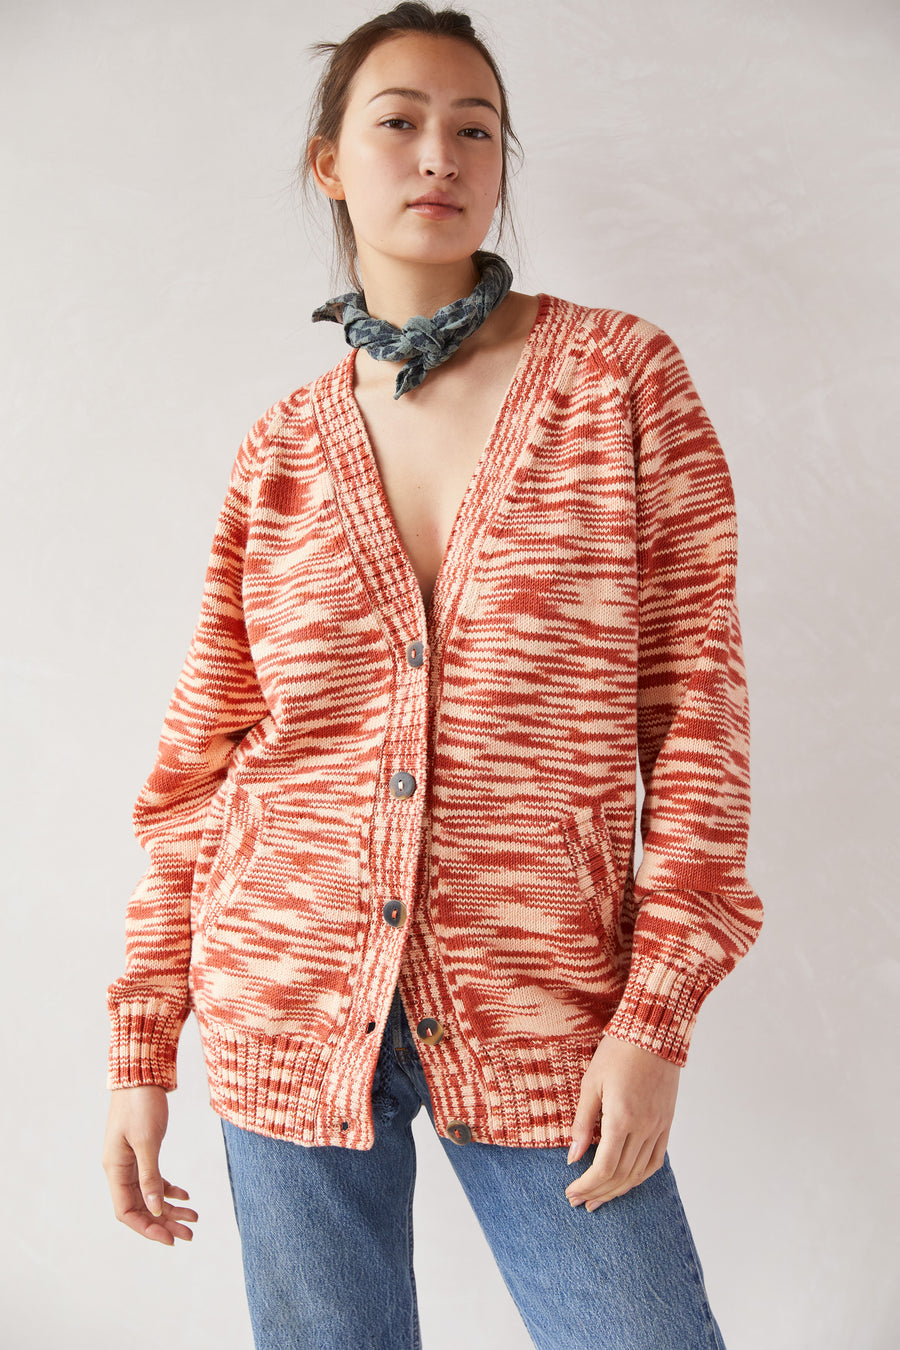 Adult Long Cardigan - Paprika Space Dye|Adult Long Cardigan - Paprika Space Dye_470_FPO.jpg